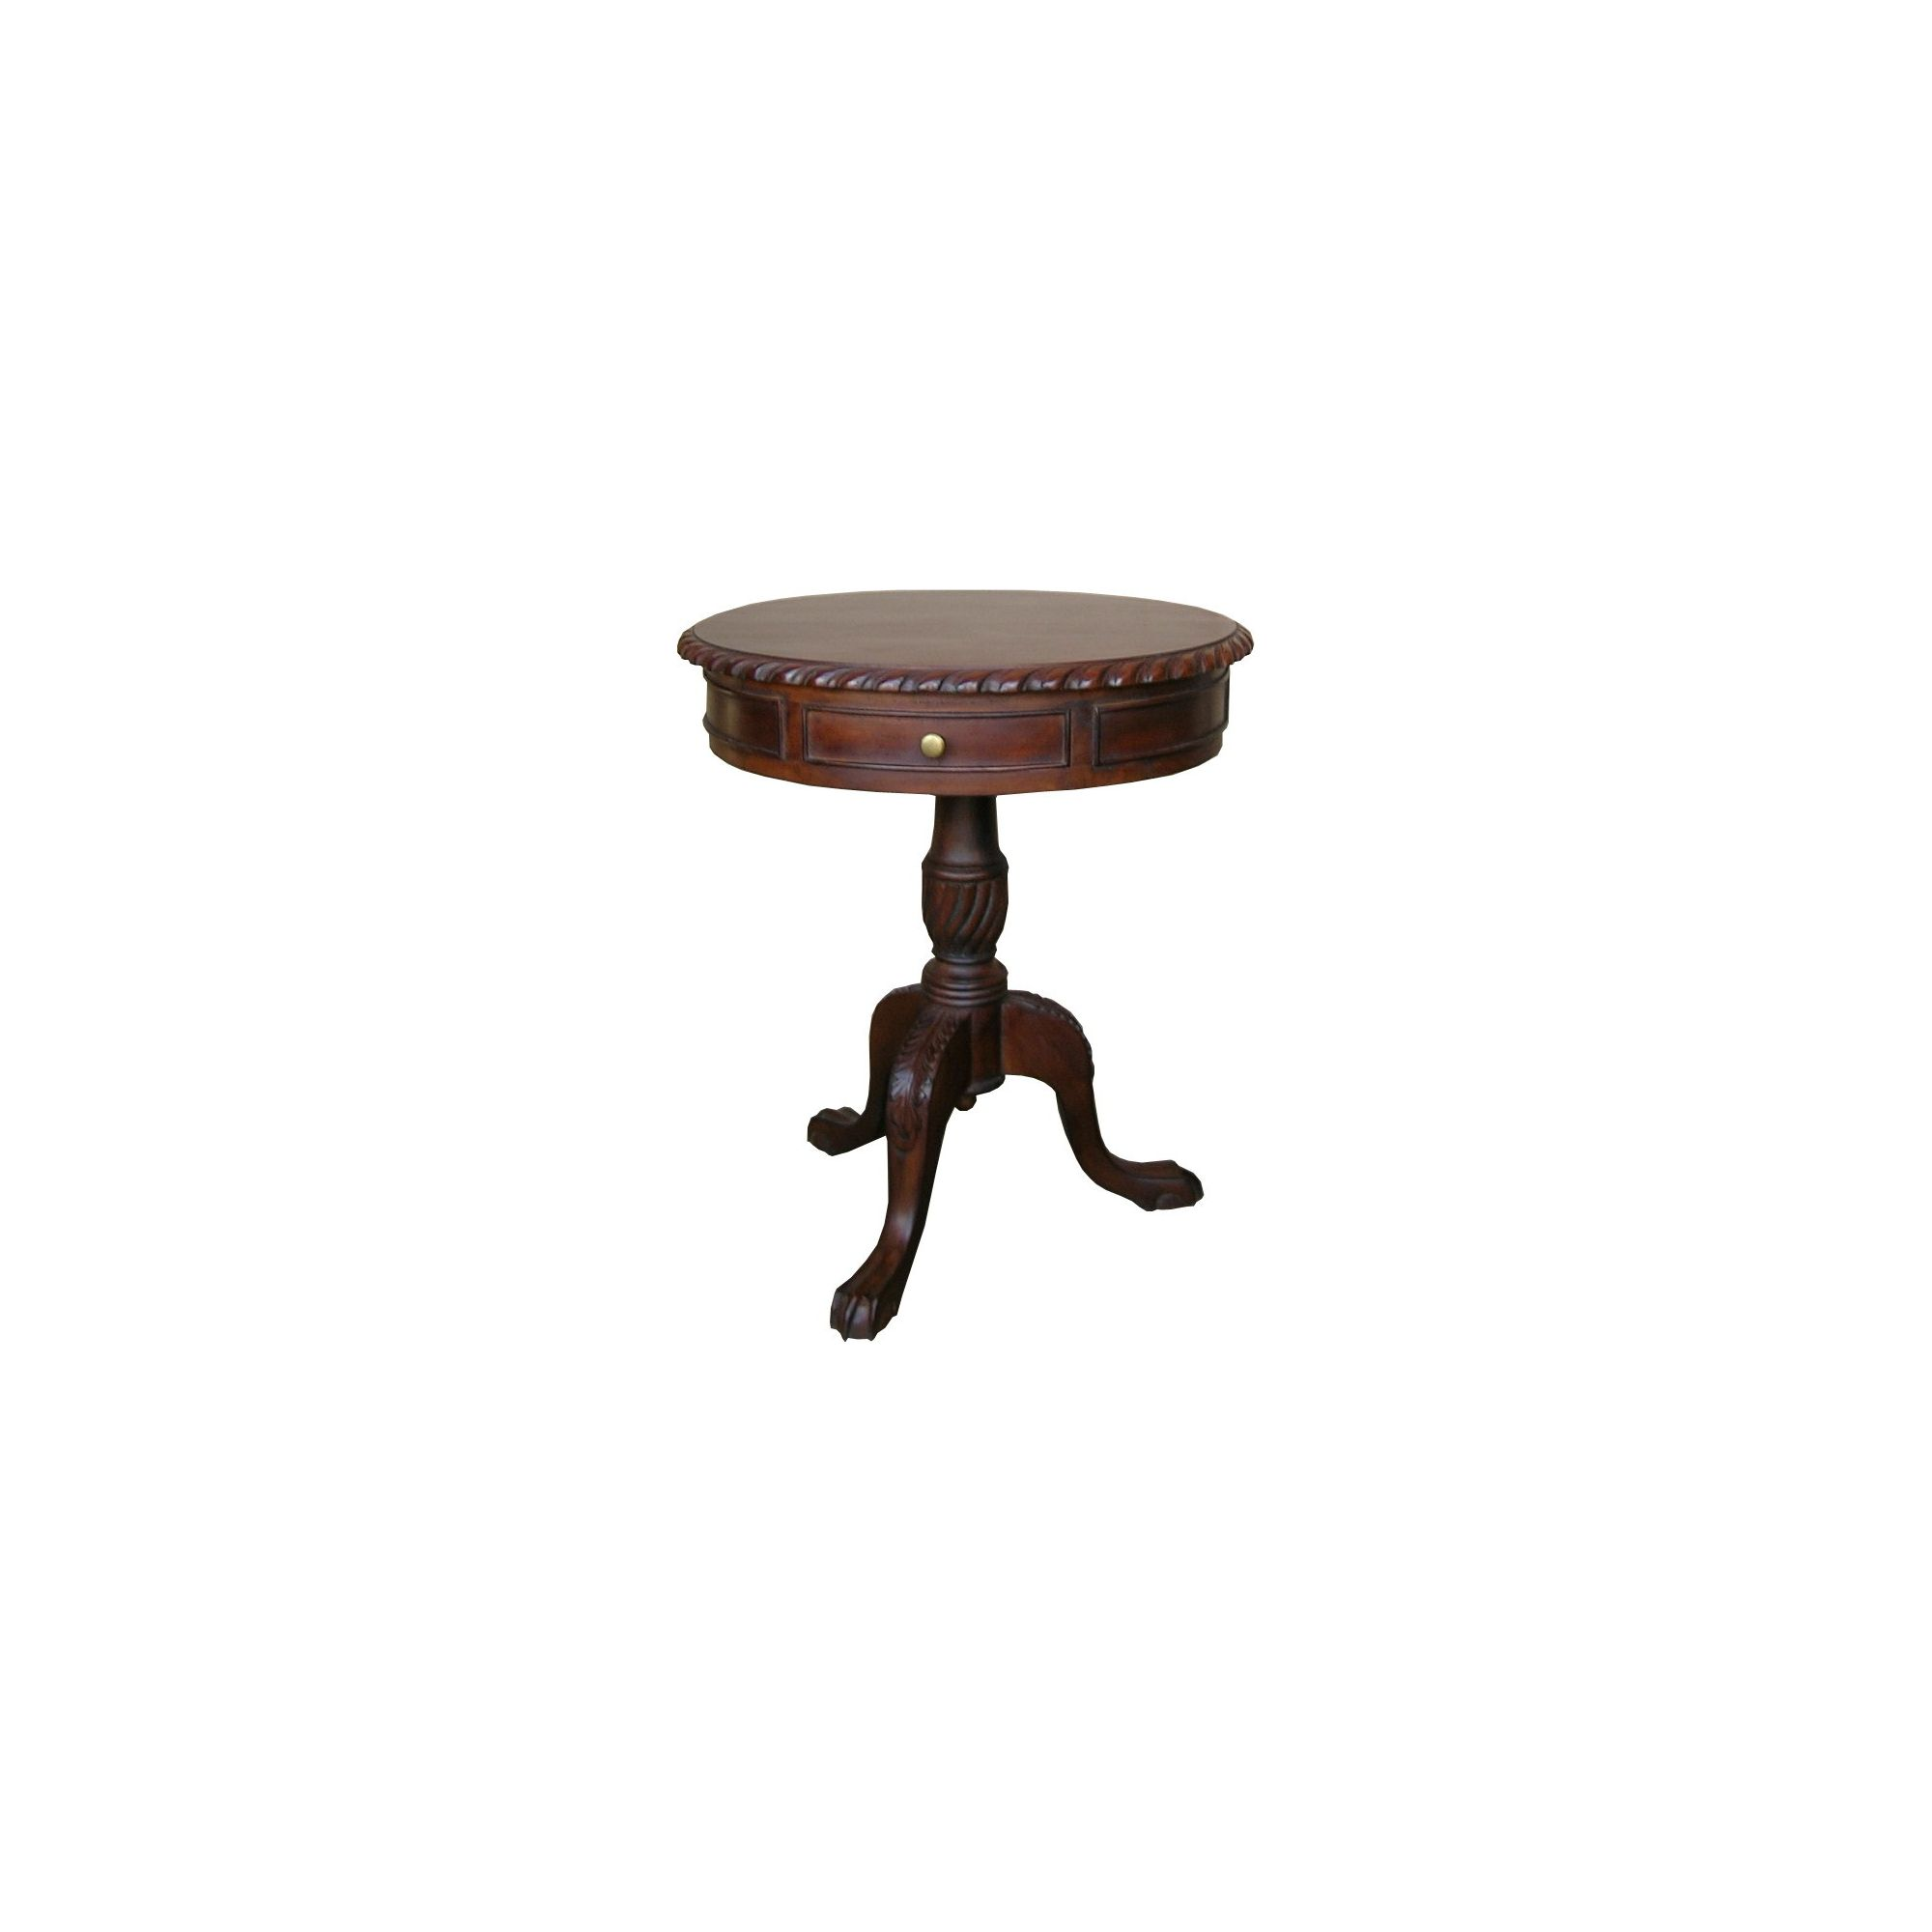 Lock stock and barrel Mahogany 2 Drawer Regency Drum Table in Mahogany at Tesco Direct